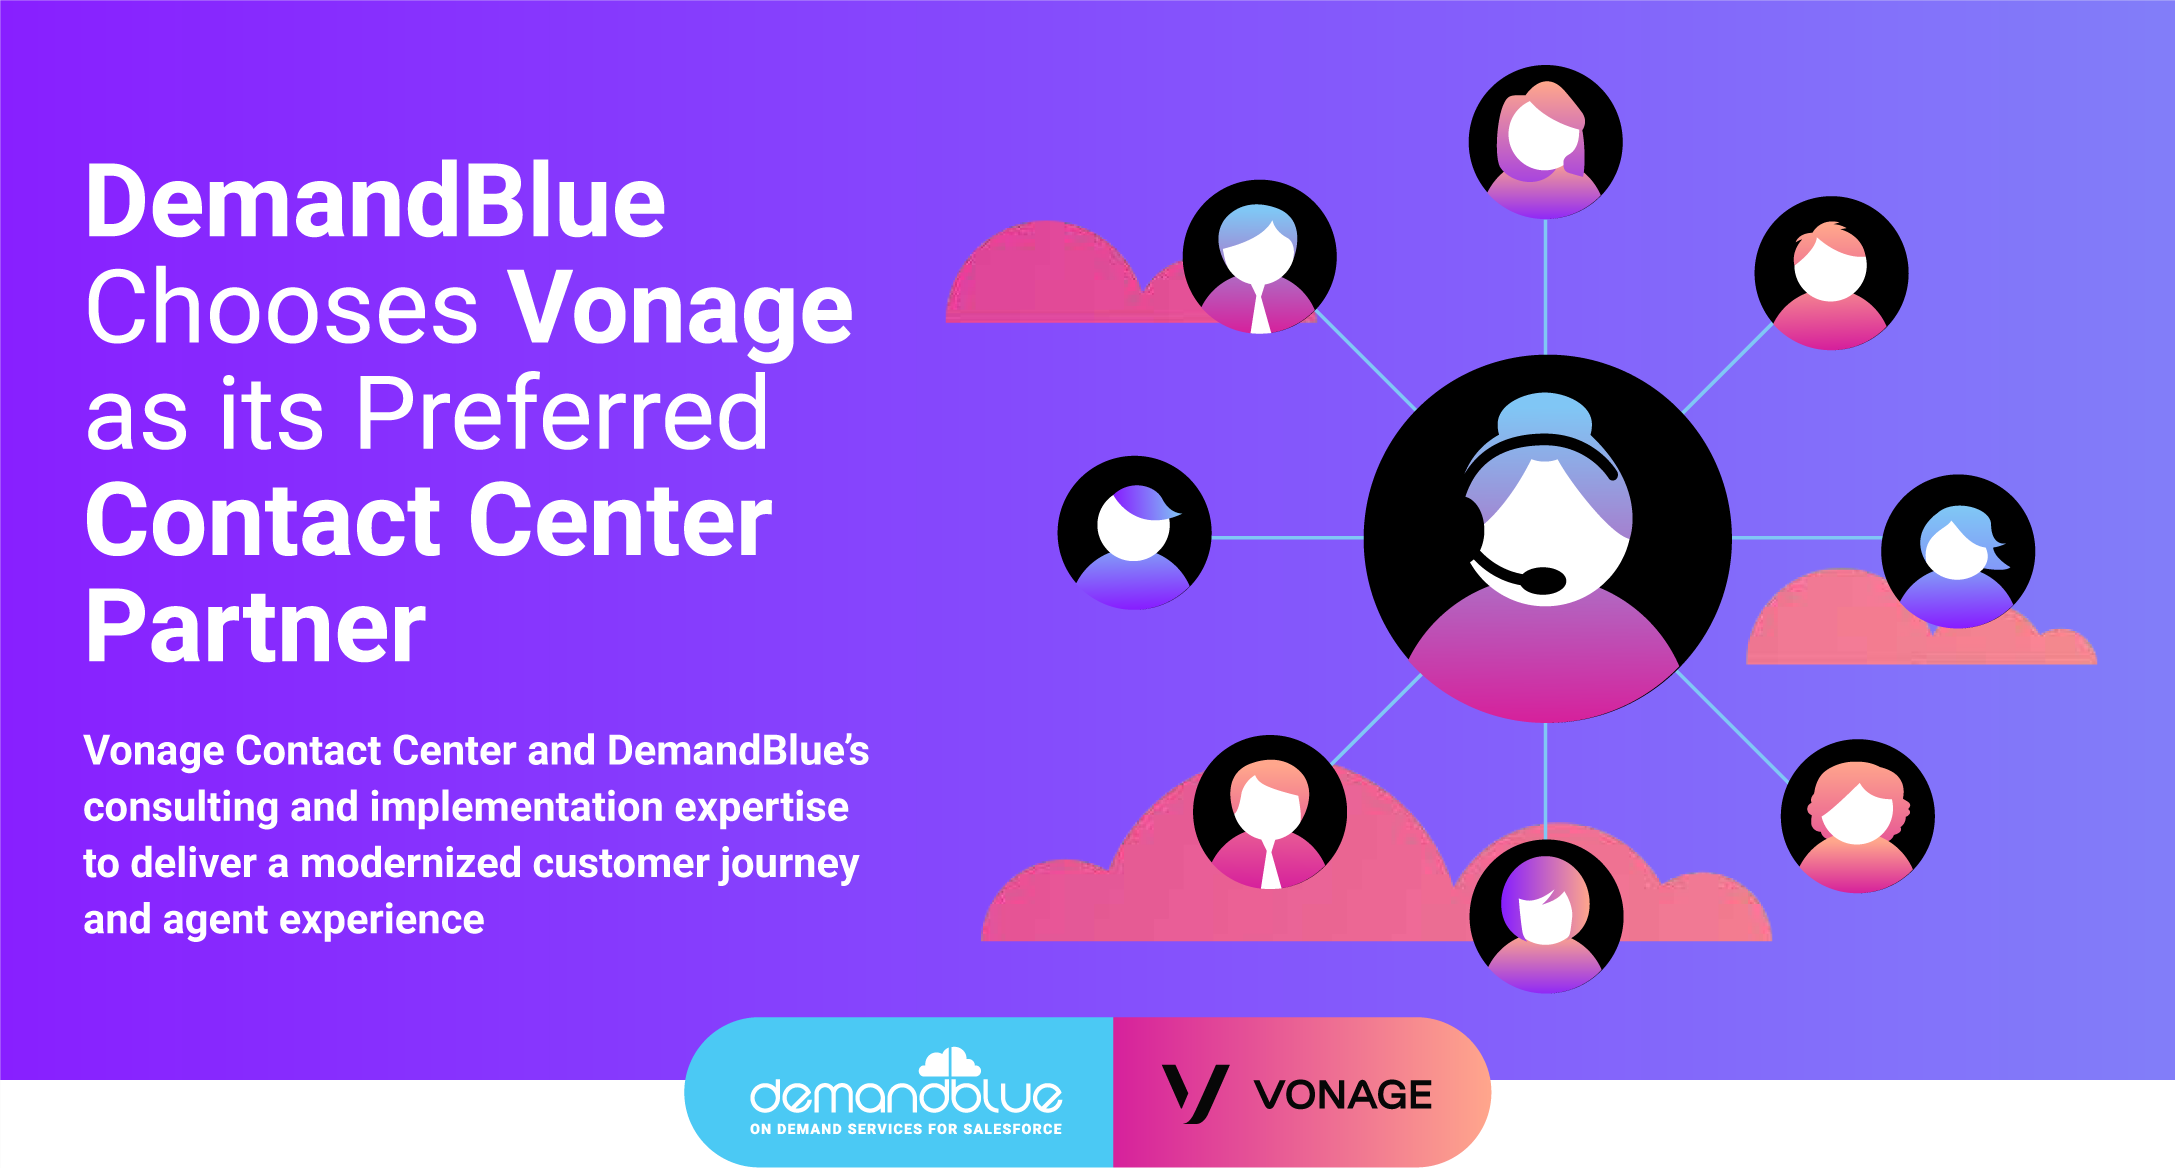 DemandBlue Chooses Vonage as its Preferred Contact Center Partner